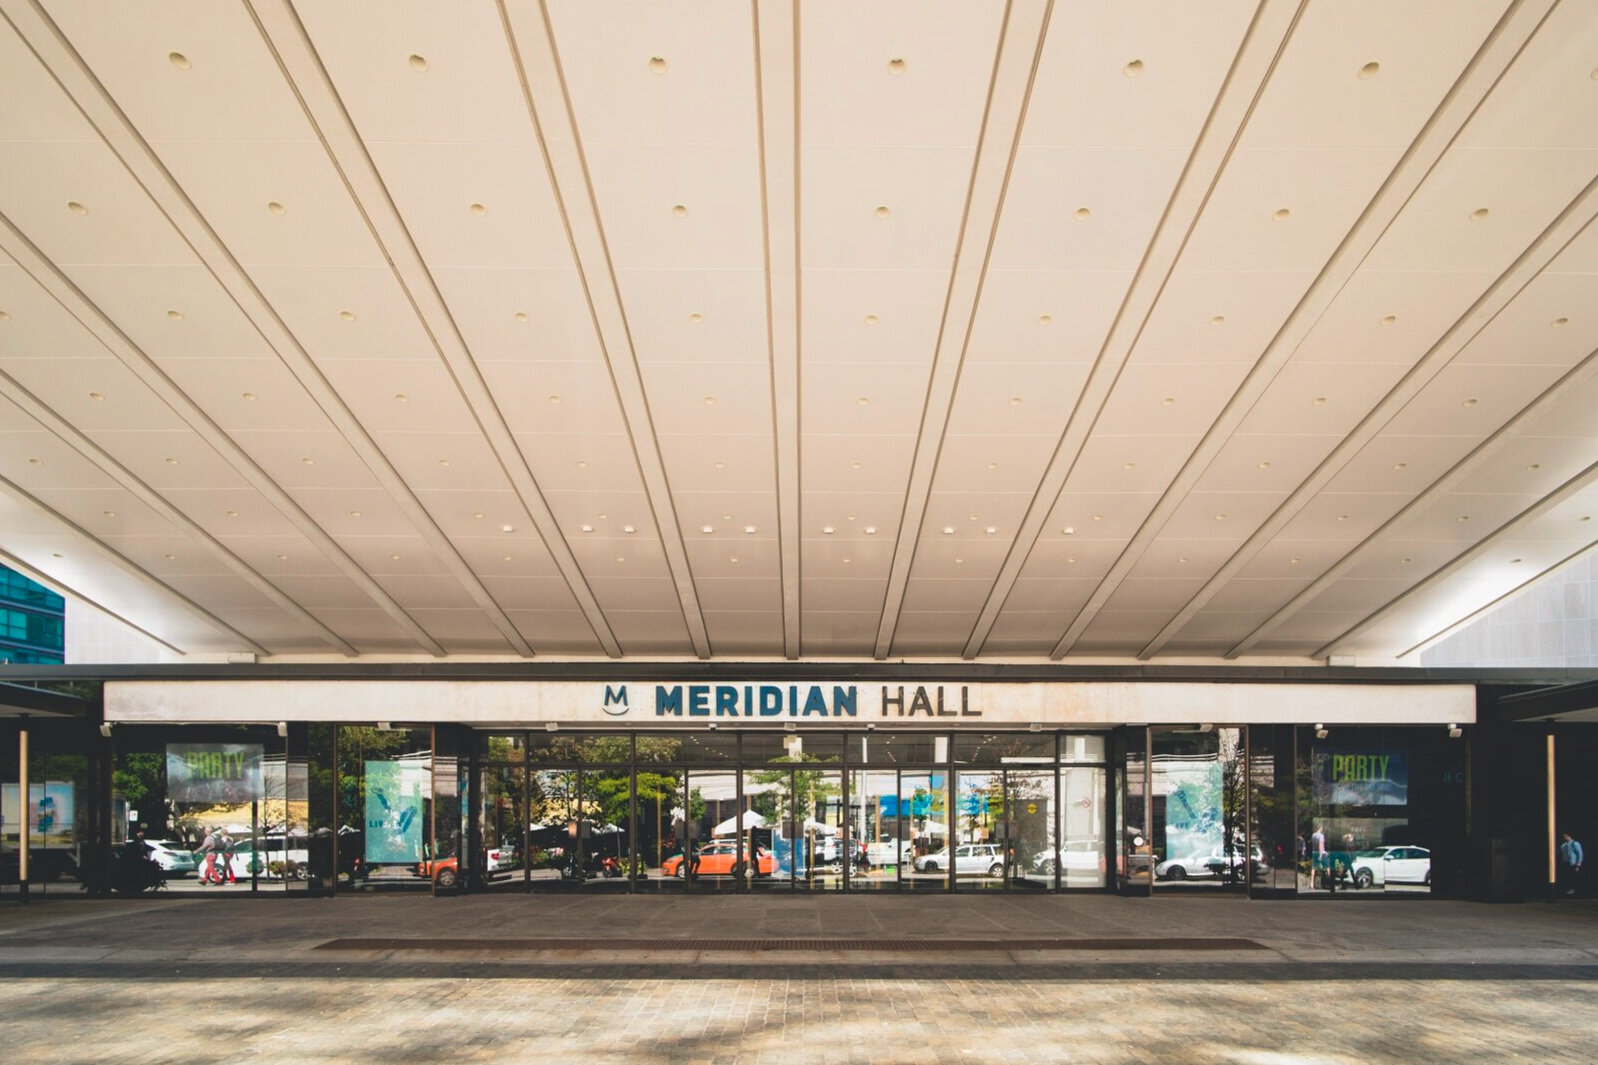 MERIDIAN HALL - formerly Sony Centre for the Performing Arts